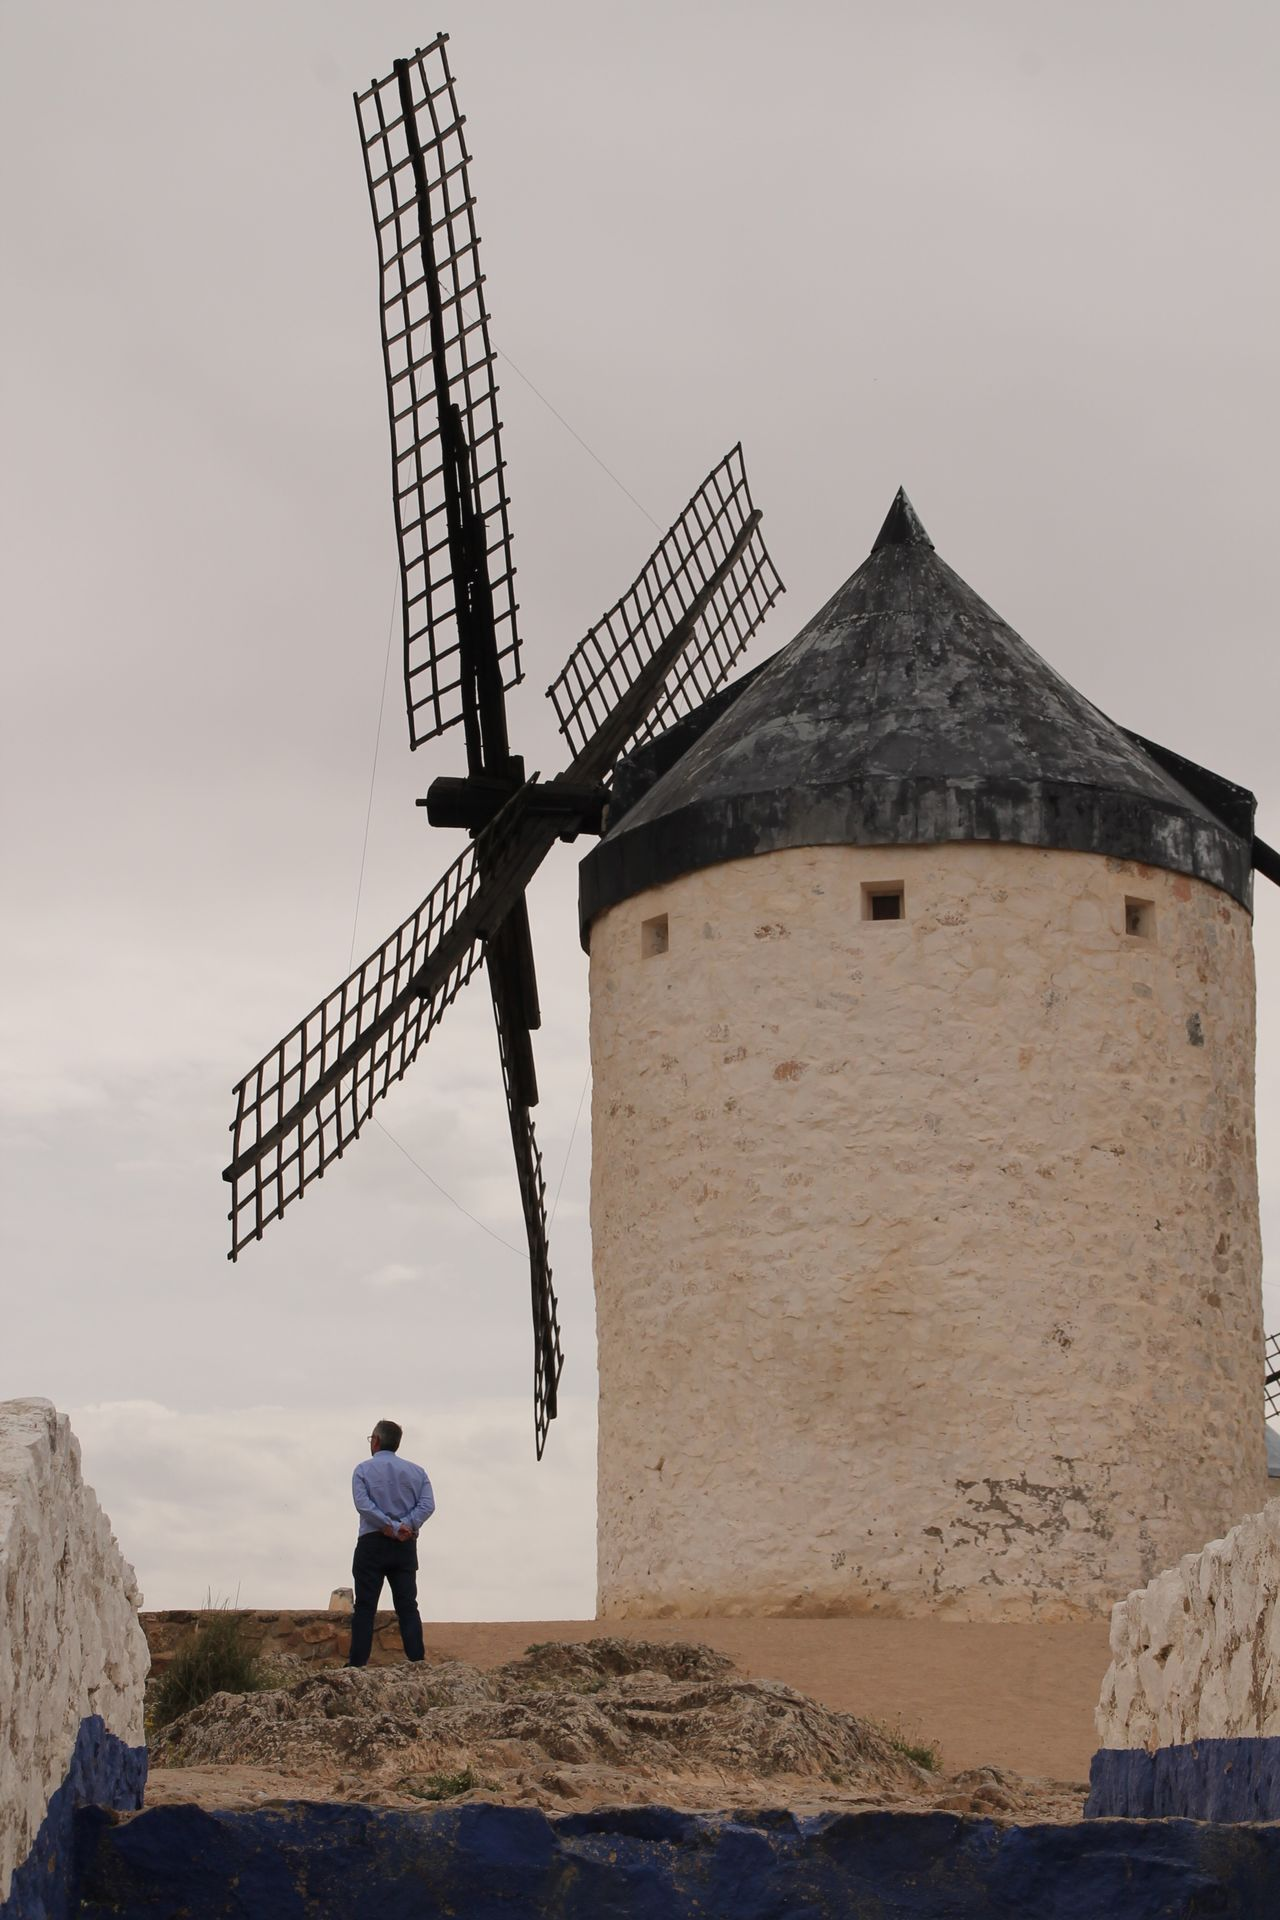 Wind Power Windmill Rural Scene Architecture Hanging Out Check This Out Travel Destinations La Mancha Consuegra Windmill Taking Photos Real People Built Structure Traditional Windmill Full Length Outdoors Standing Day Architecture Men One Person Sky Rear View Lifestyles Low Angle View